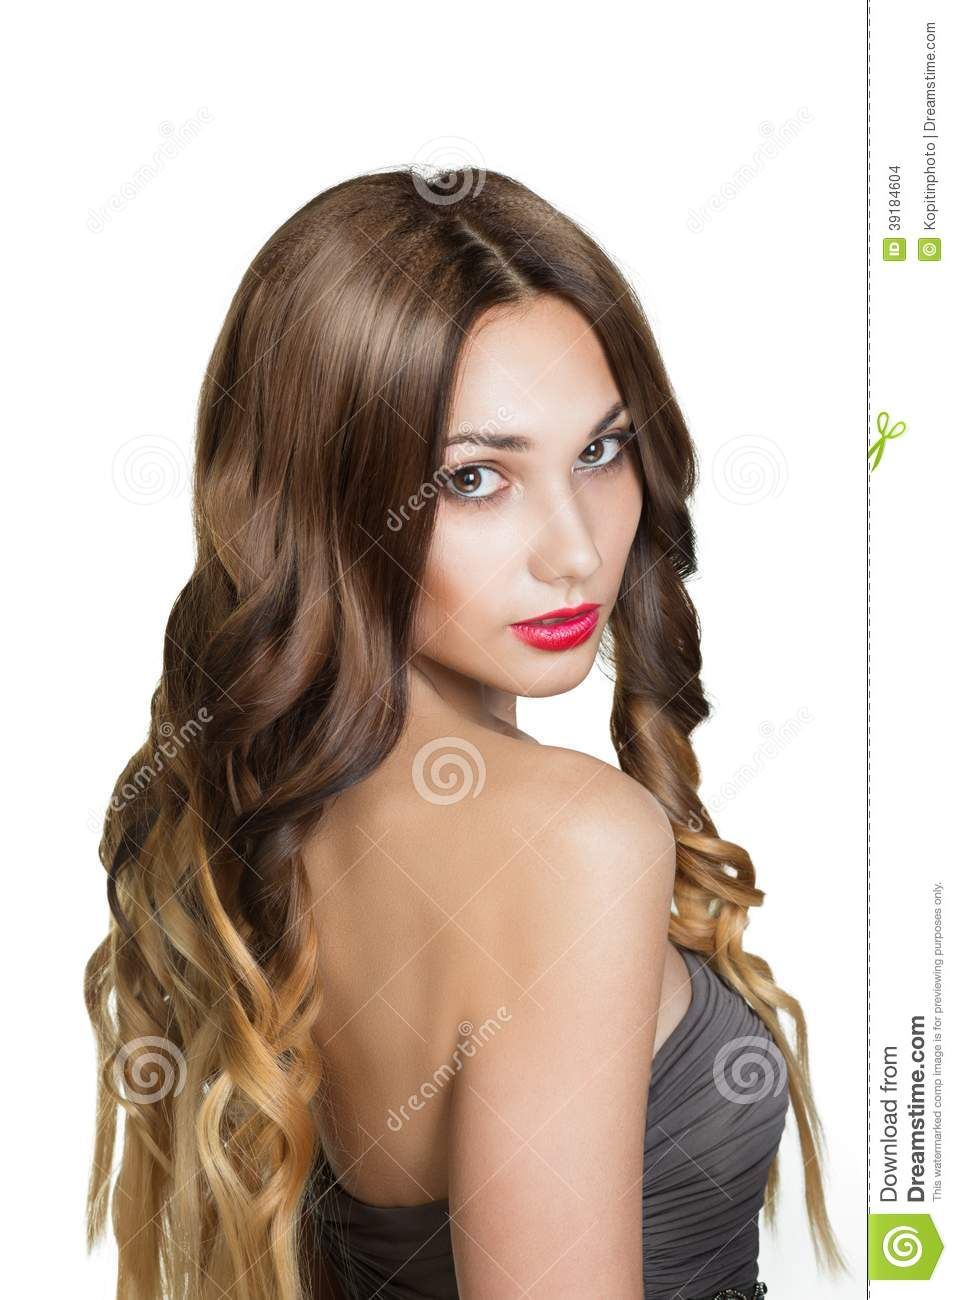 Girl With Long Healthy Brown Hair Royalty Free Stock